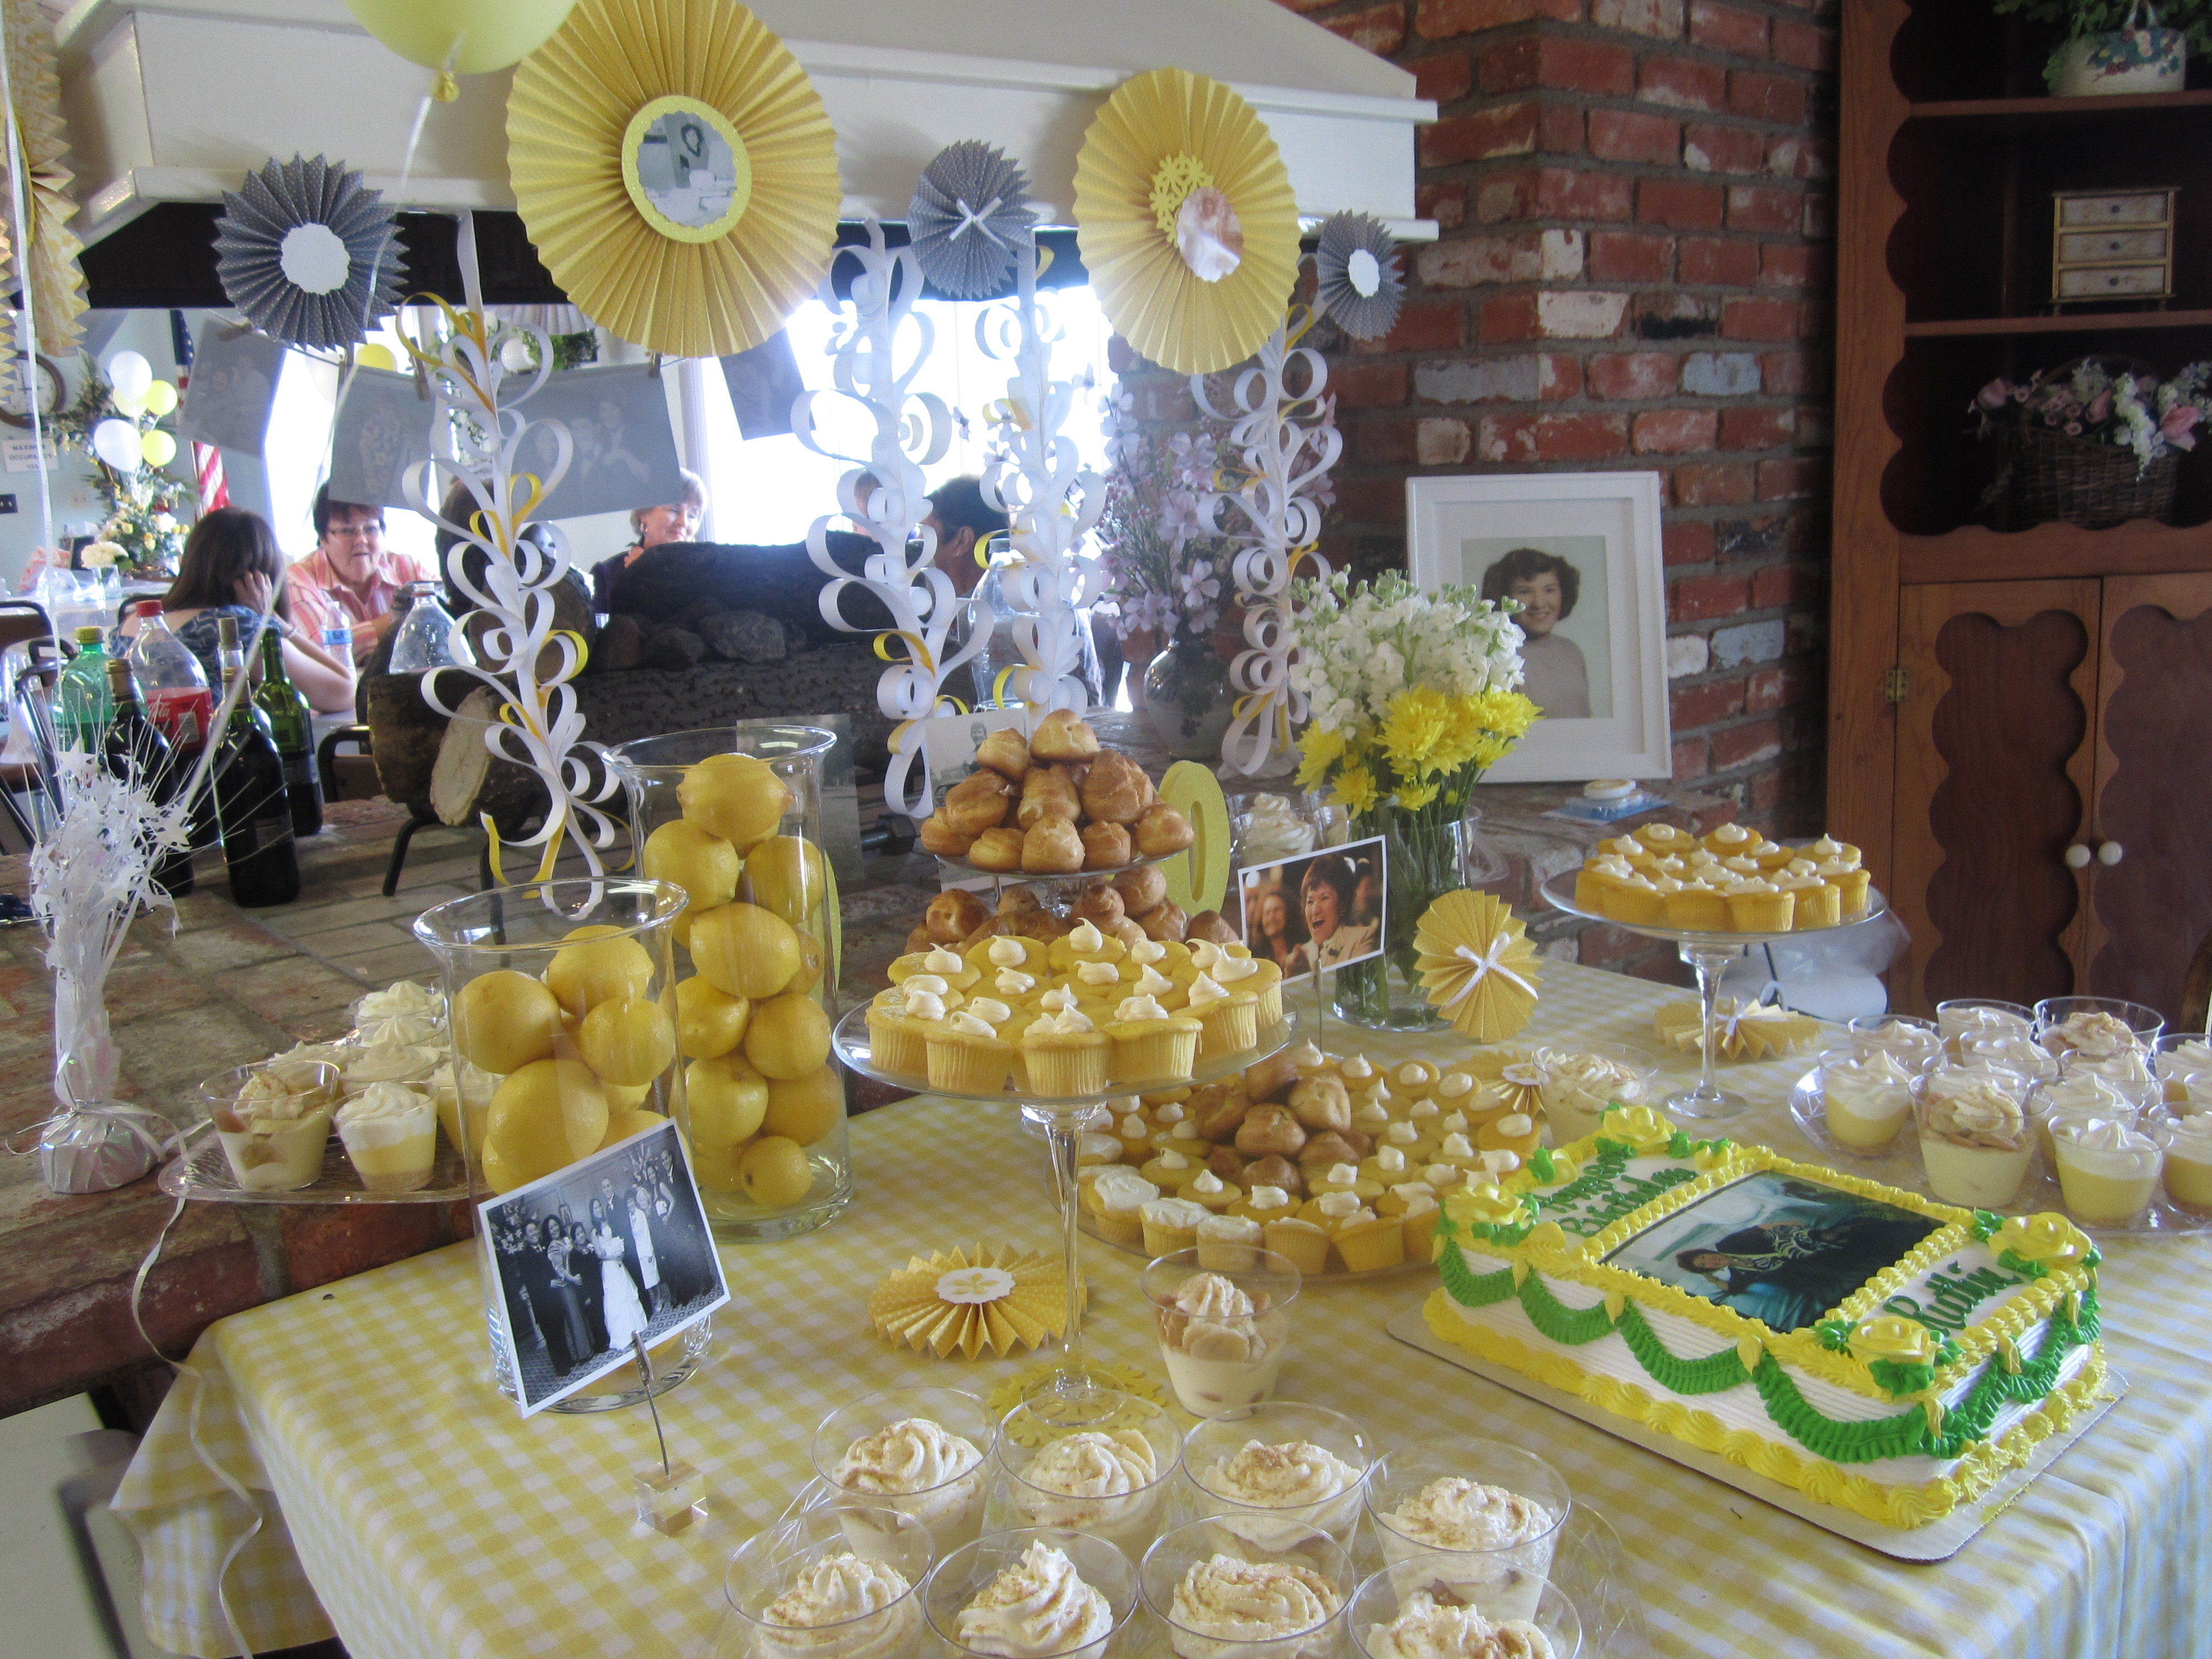 Best ideas about 80th Birthday Decorations . Save or Pin Granny's 80th Birthday Celebration and Catering Now.